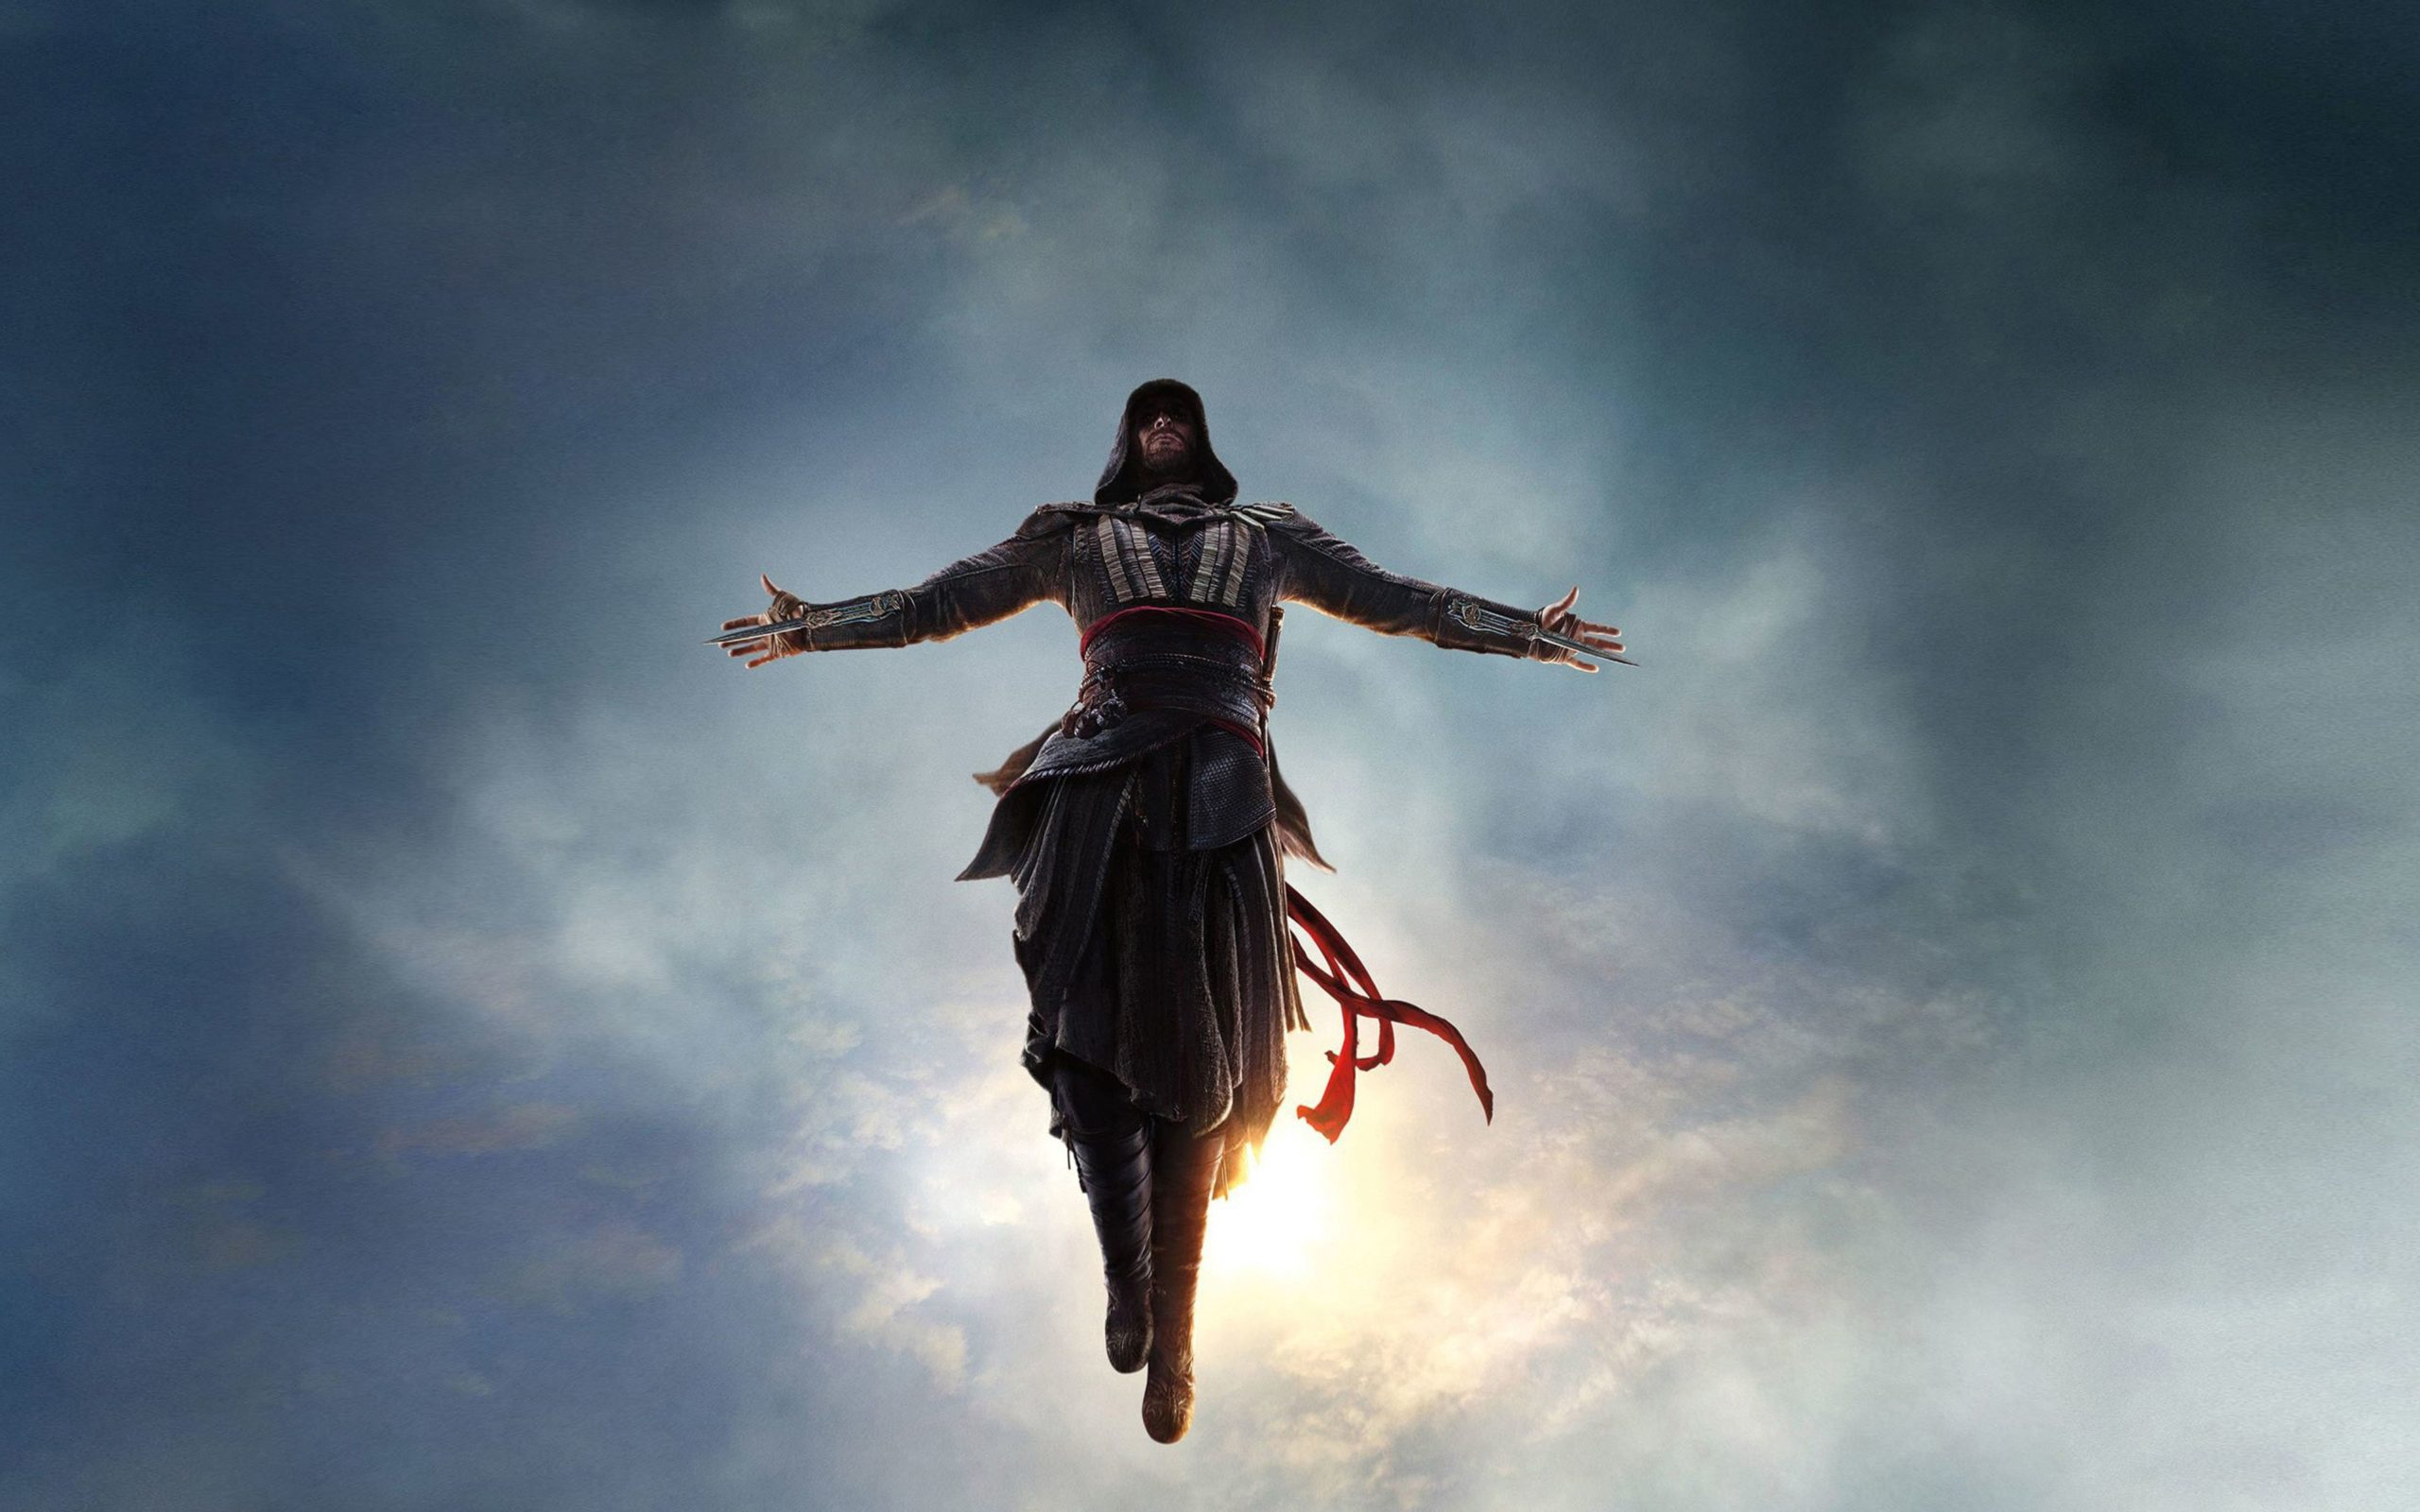 assassin's creed background pictures free download